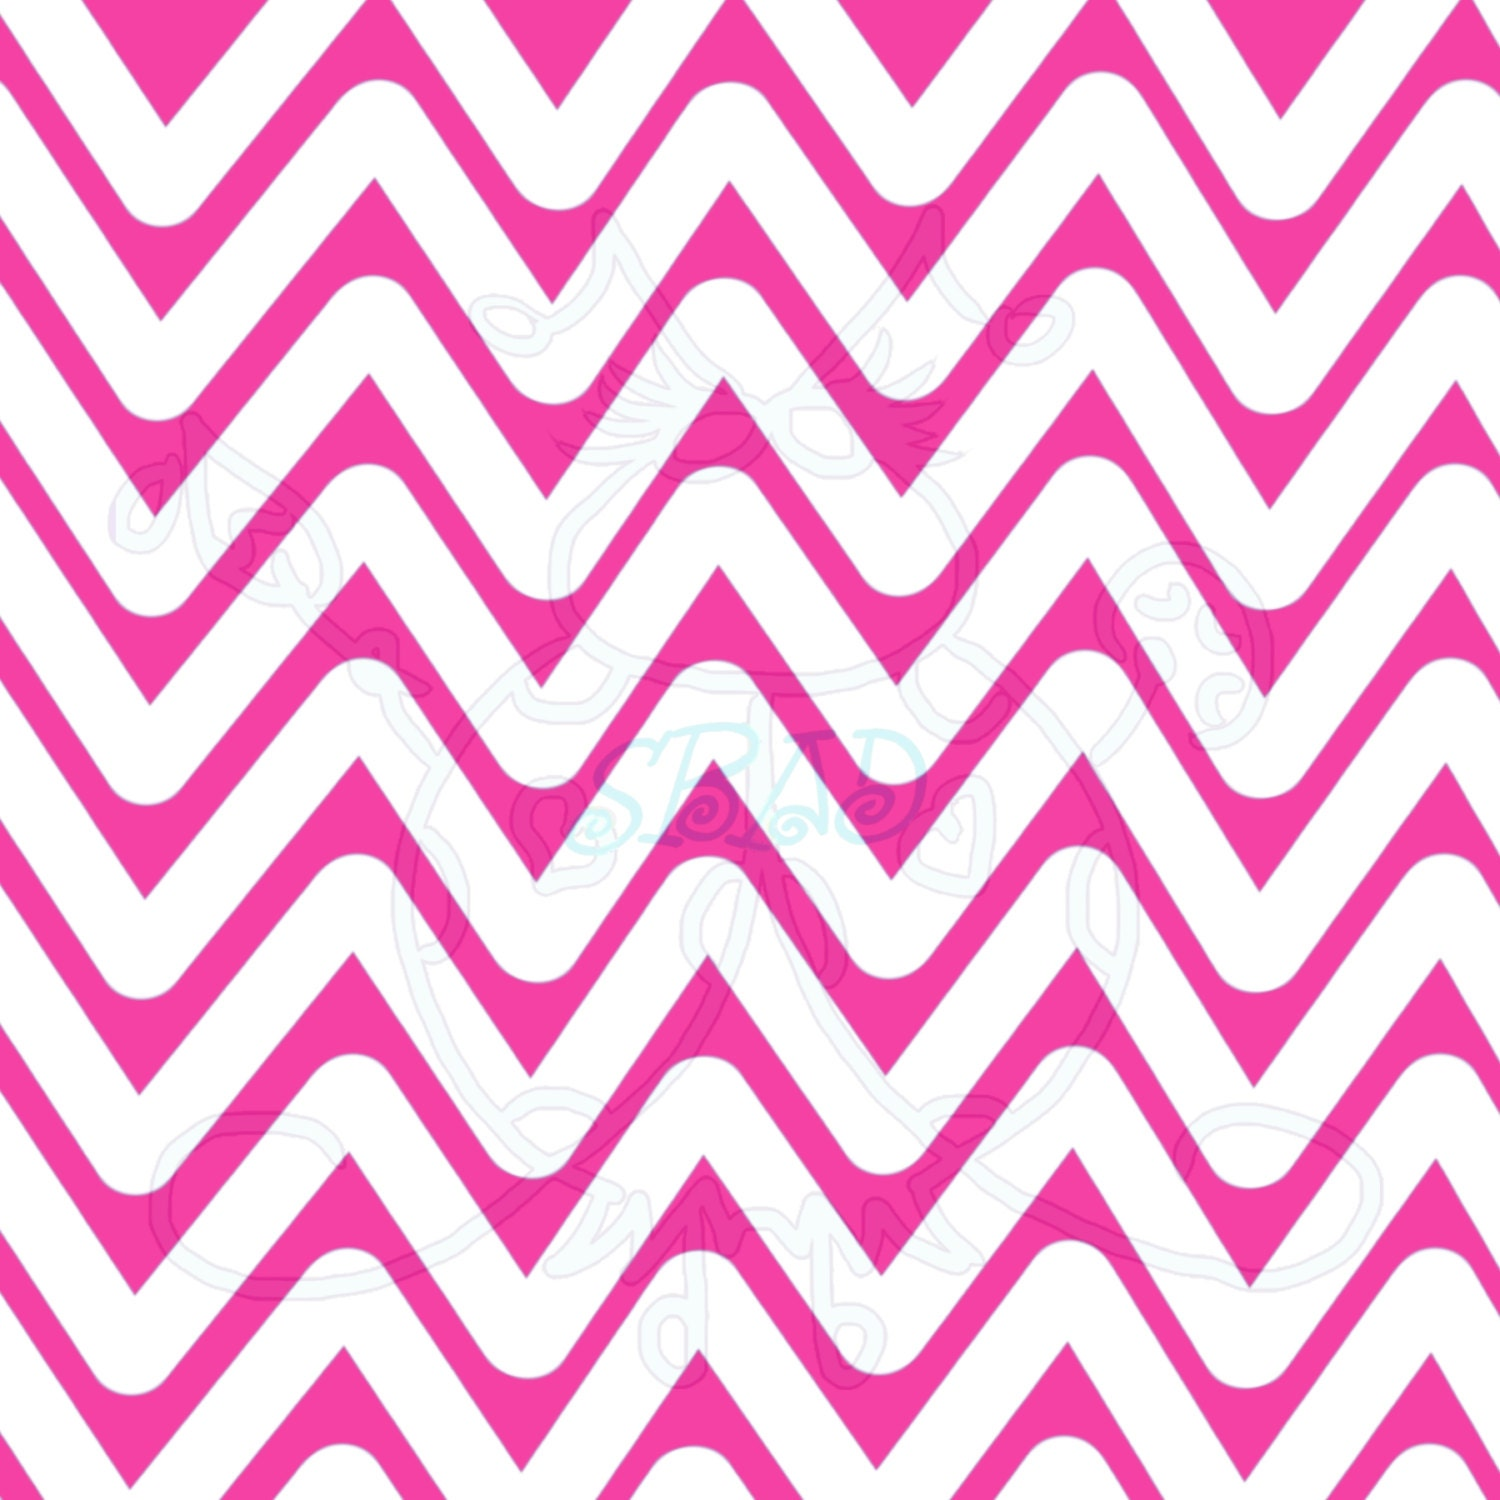 Teal and pink background